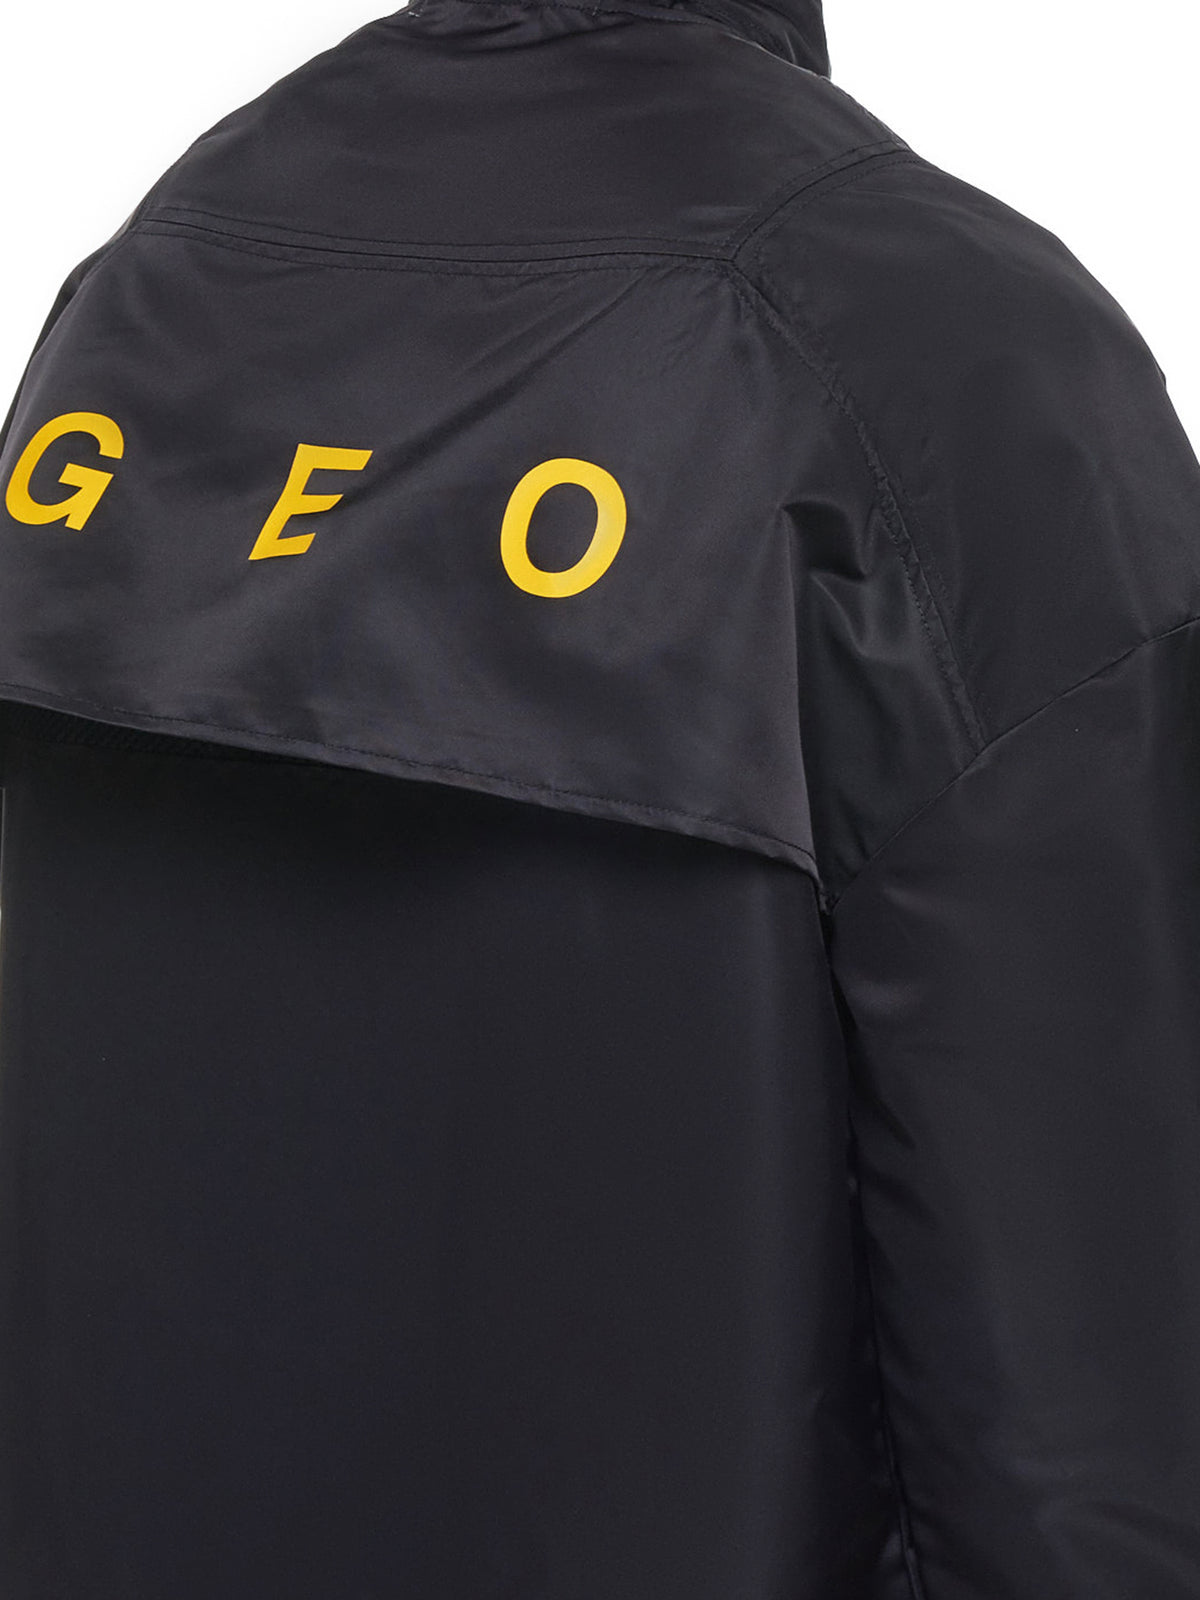 82a90dee3a2 Geo clothing for Men SS19 | H.LORENZO - Los Angeles